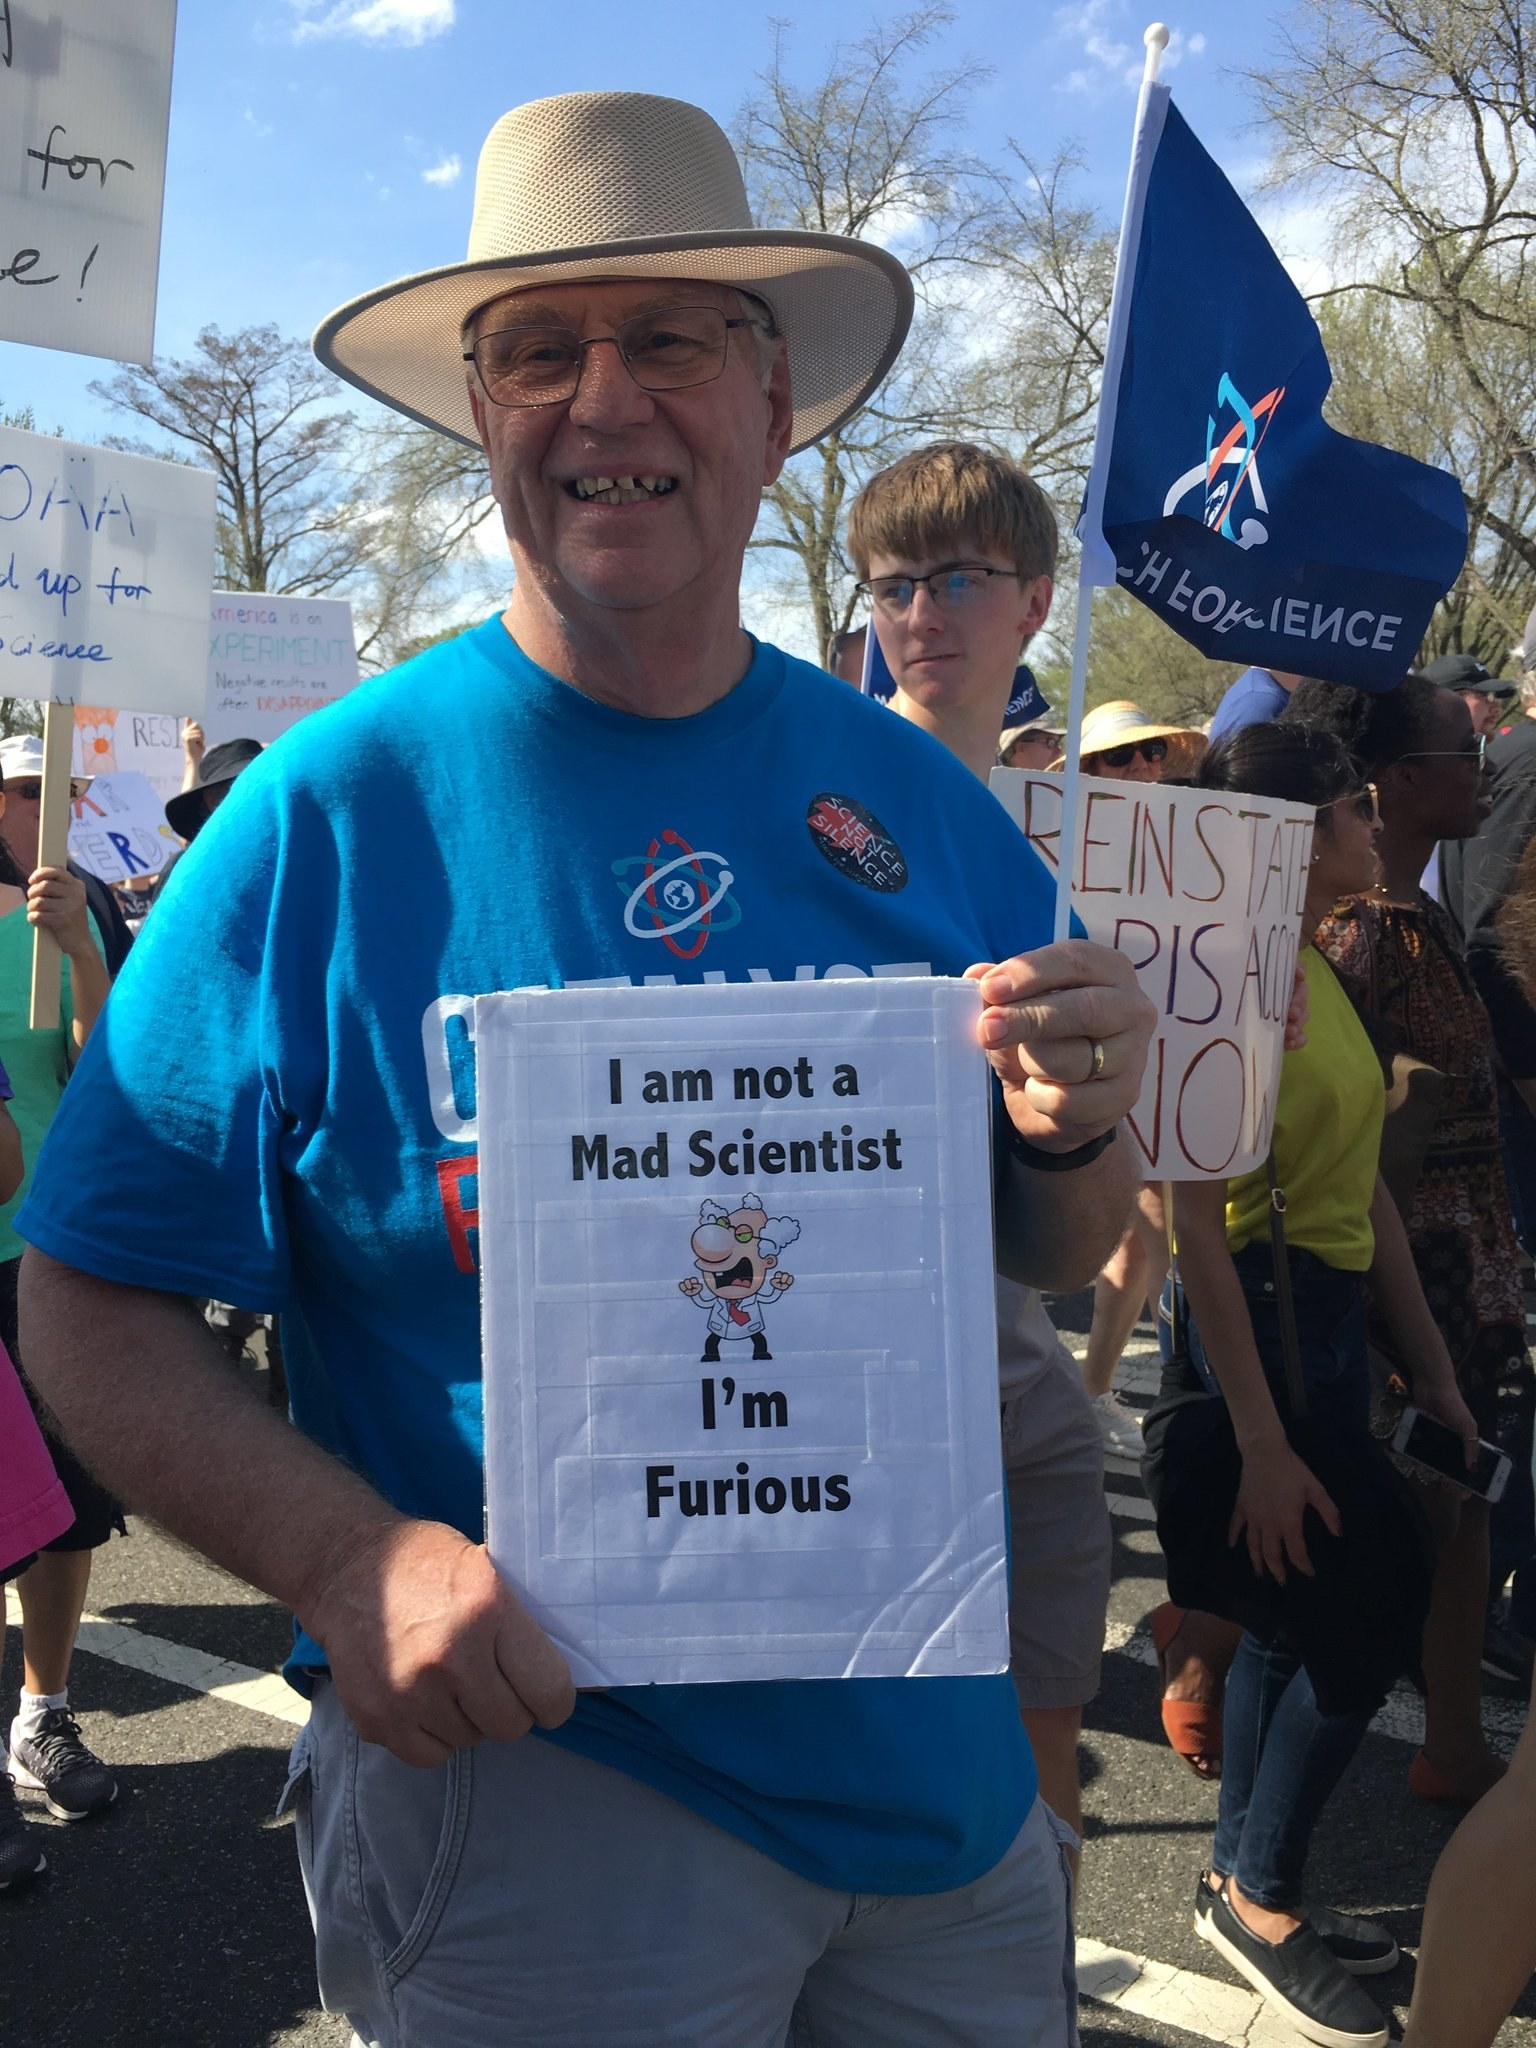 Here Are The Best, Most Wonderfully Nerdy Signs From The March For Science 2018